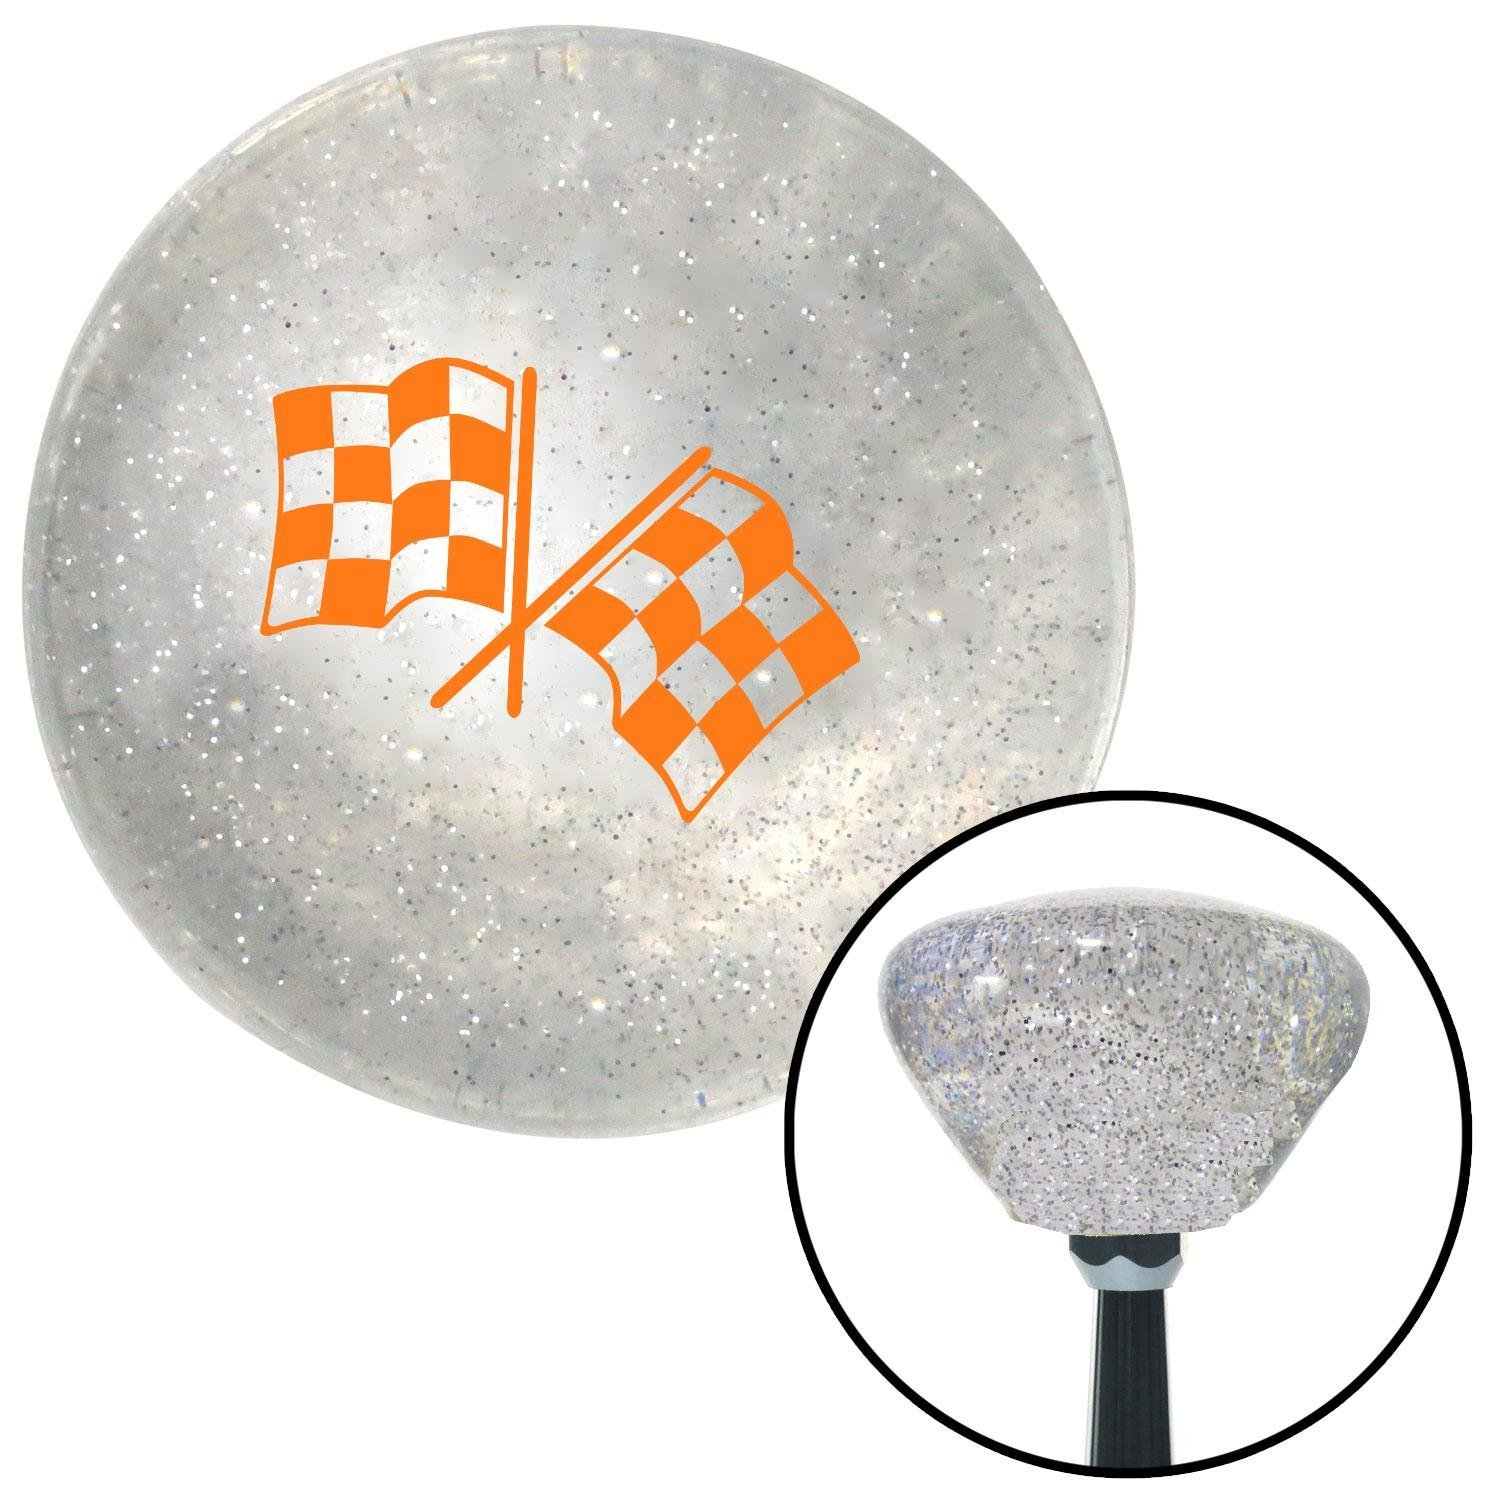 American Shifter 163621 Clear Retro Metal Flake Shift Knob with M16 x 1.5 Insert Orange 2 Checkered Race Flags